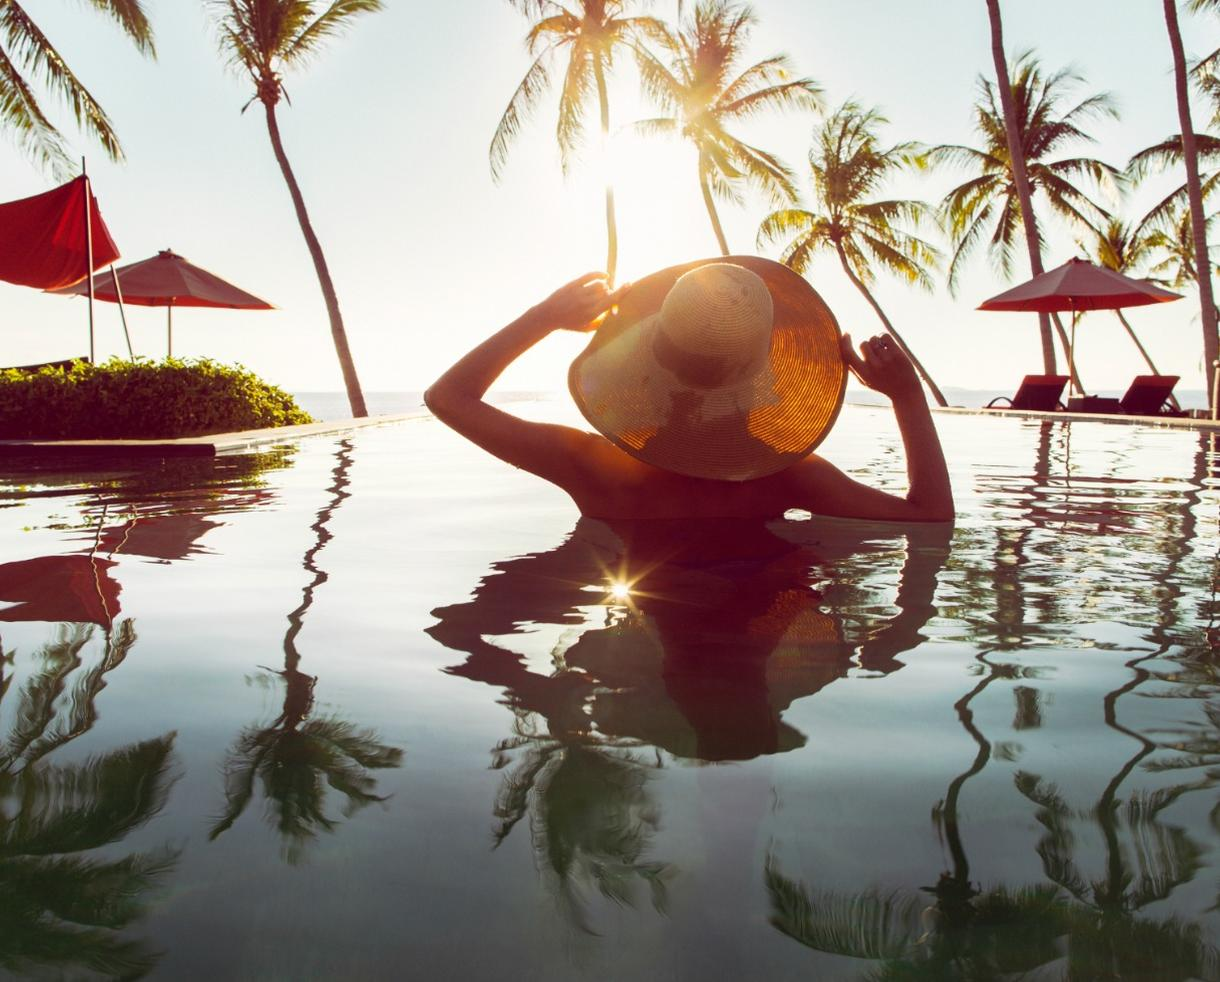 Save $150 on Select Flight & Hotel Packages With Travelocity